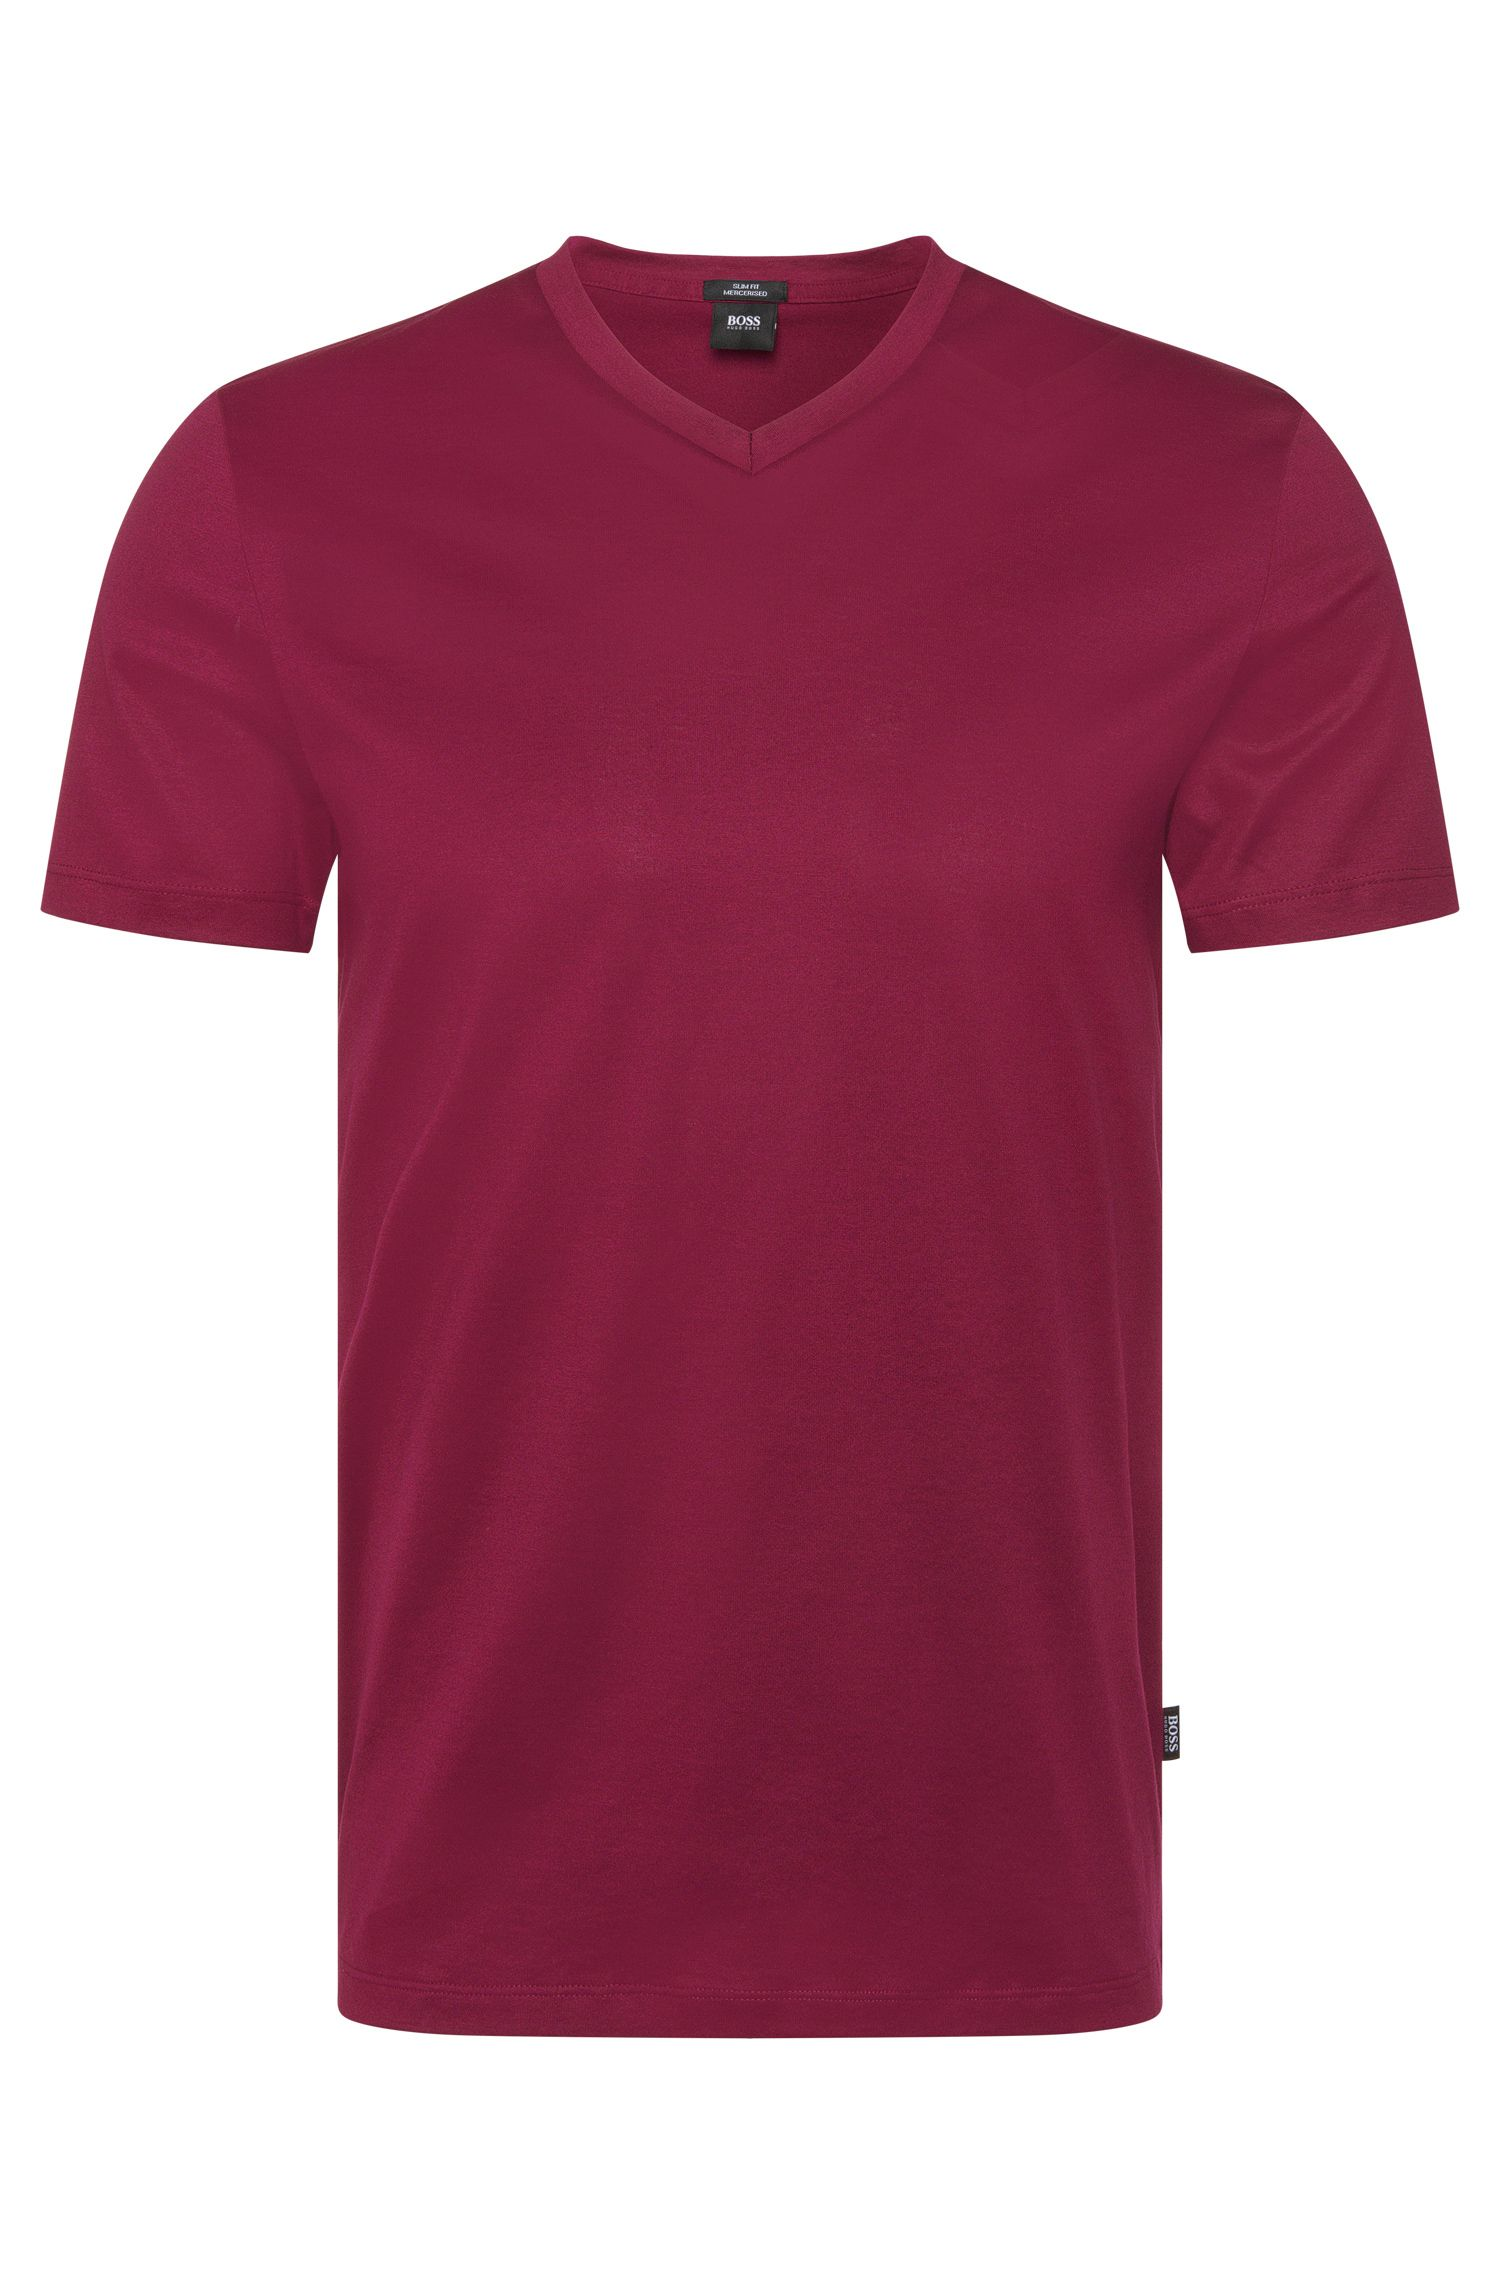 Camiseta lisa slim fit con escote en pico: 'Teal 14'